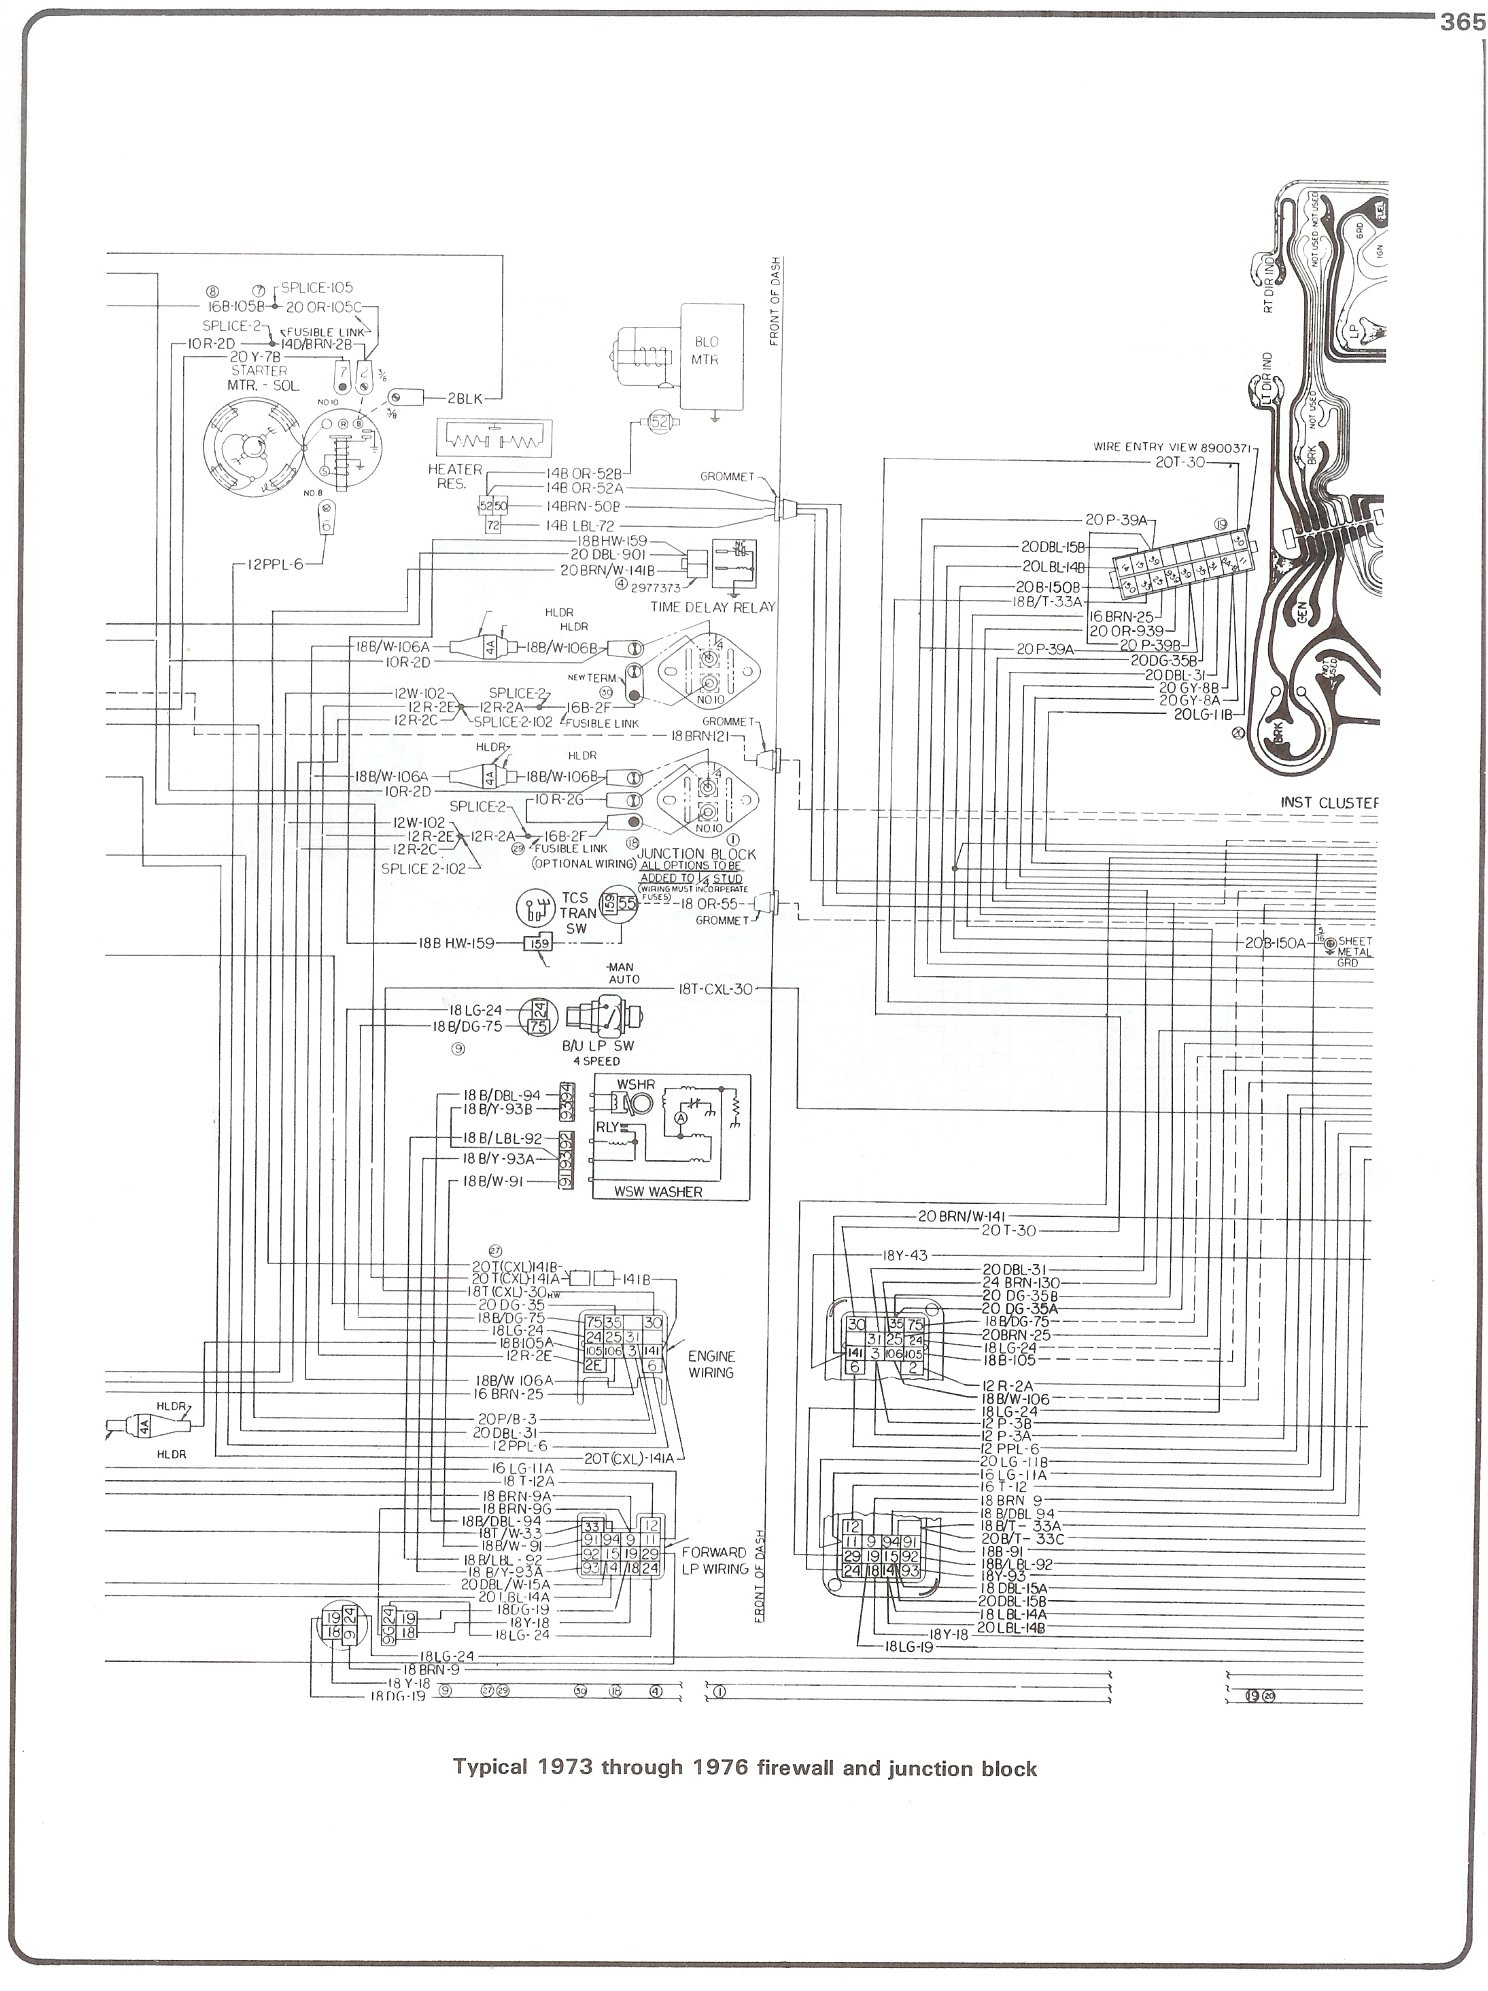 73 76_firewall_junct complete 73 87 wiring diagrams Chevy Engine Wiring Harness at mifinder.co